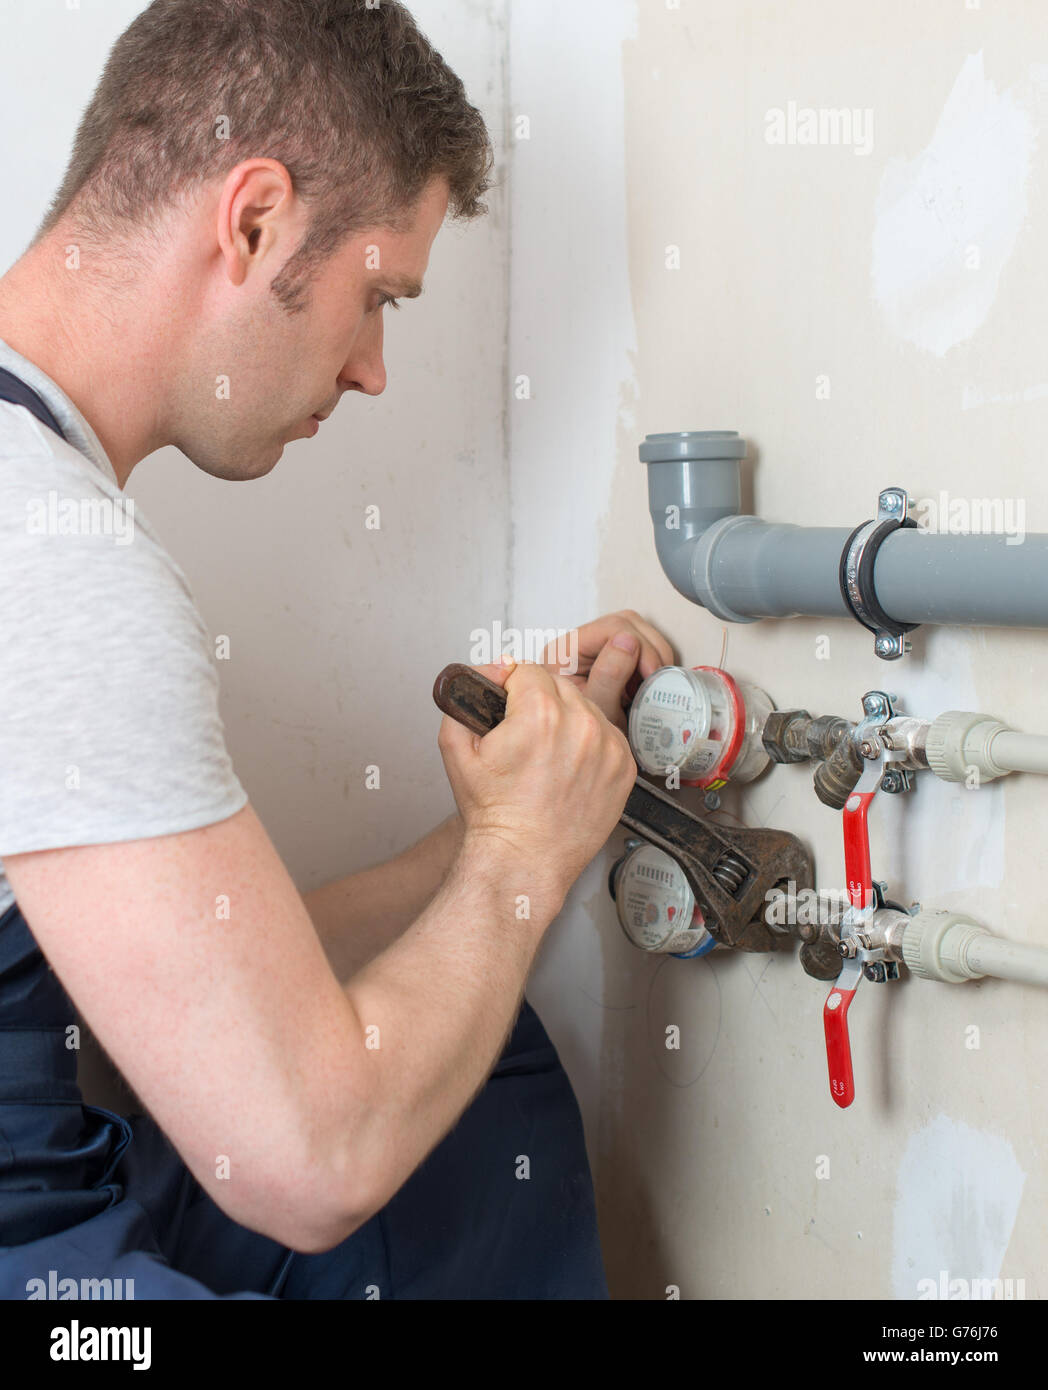 Male plumber assembling water pipes. - Stock Image